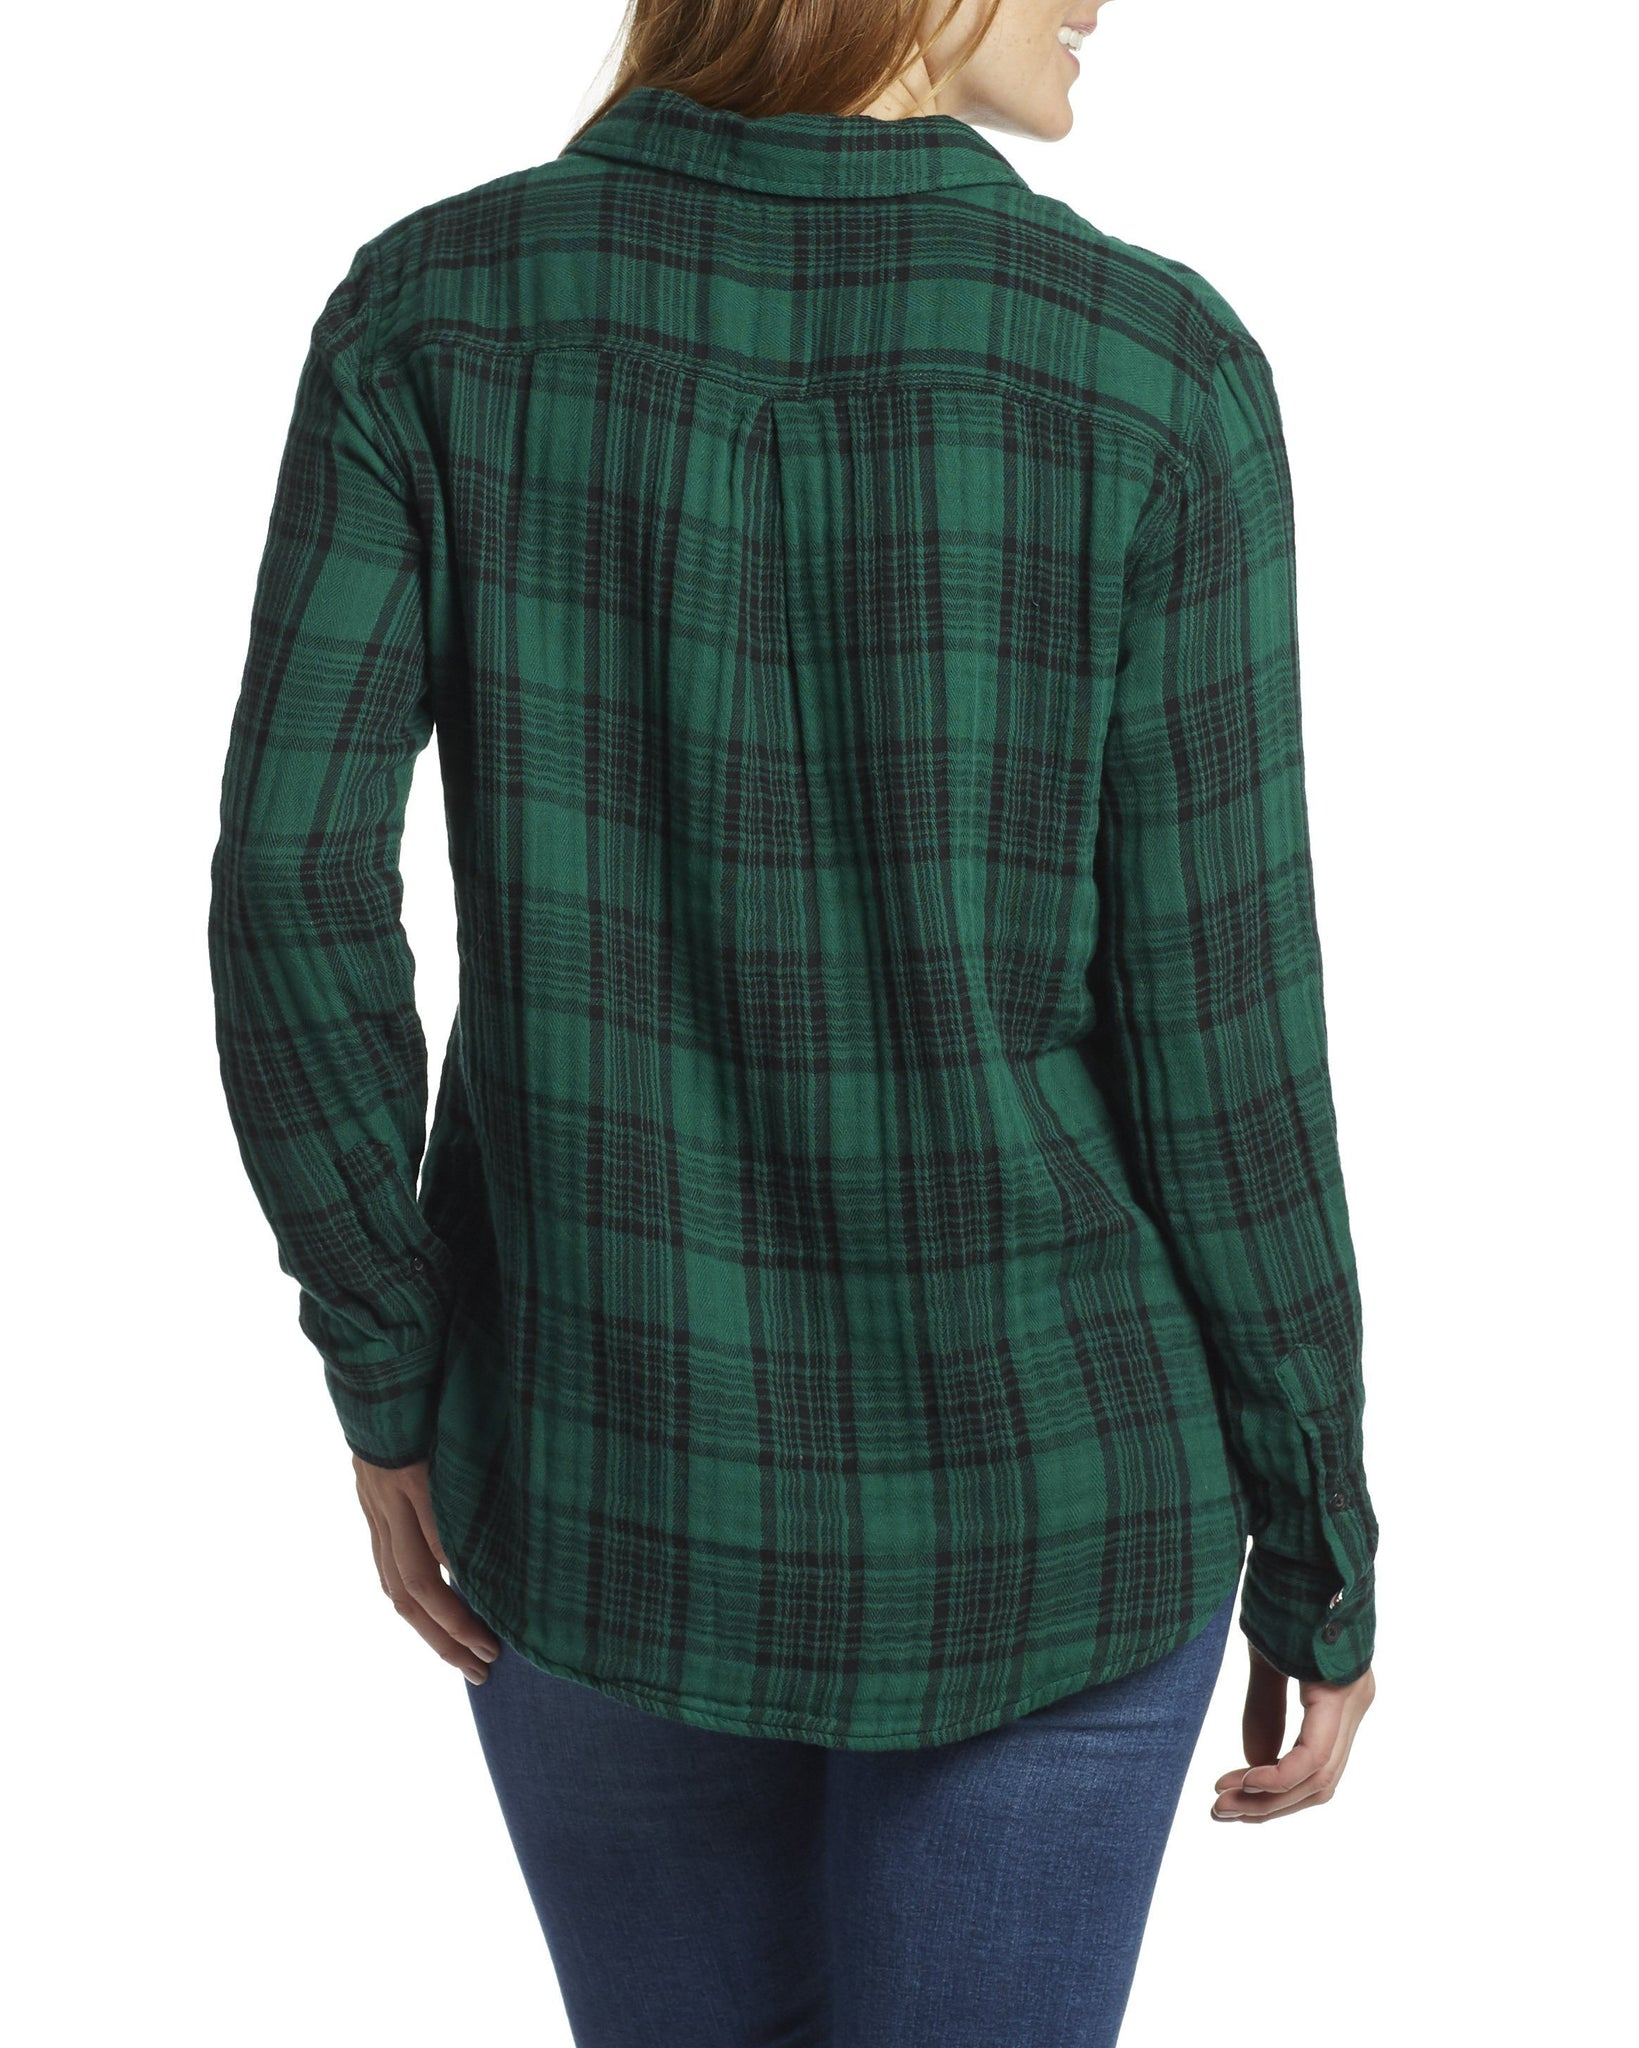 Women's Shirts - BELLAMY WOMEN'S DOUBLE LAYER SHIRT - GREEN/BLACK